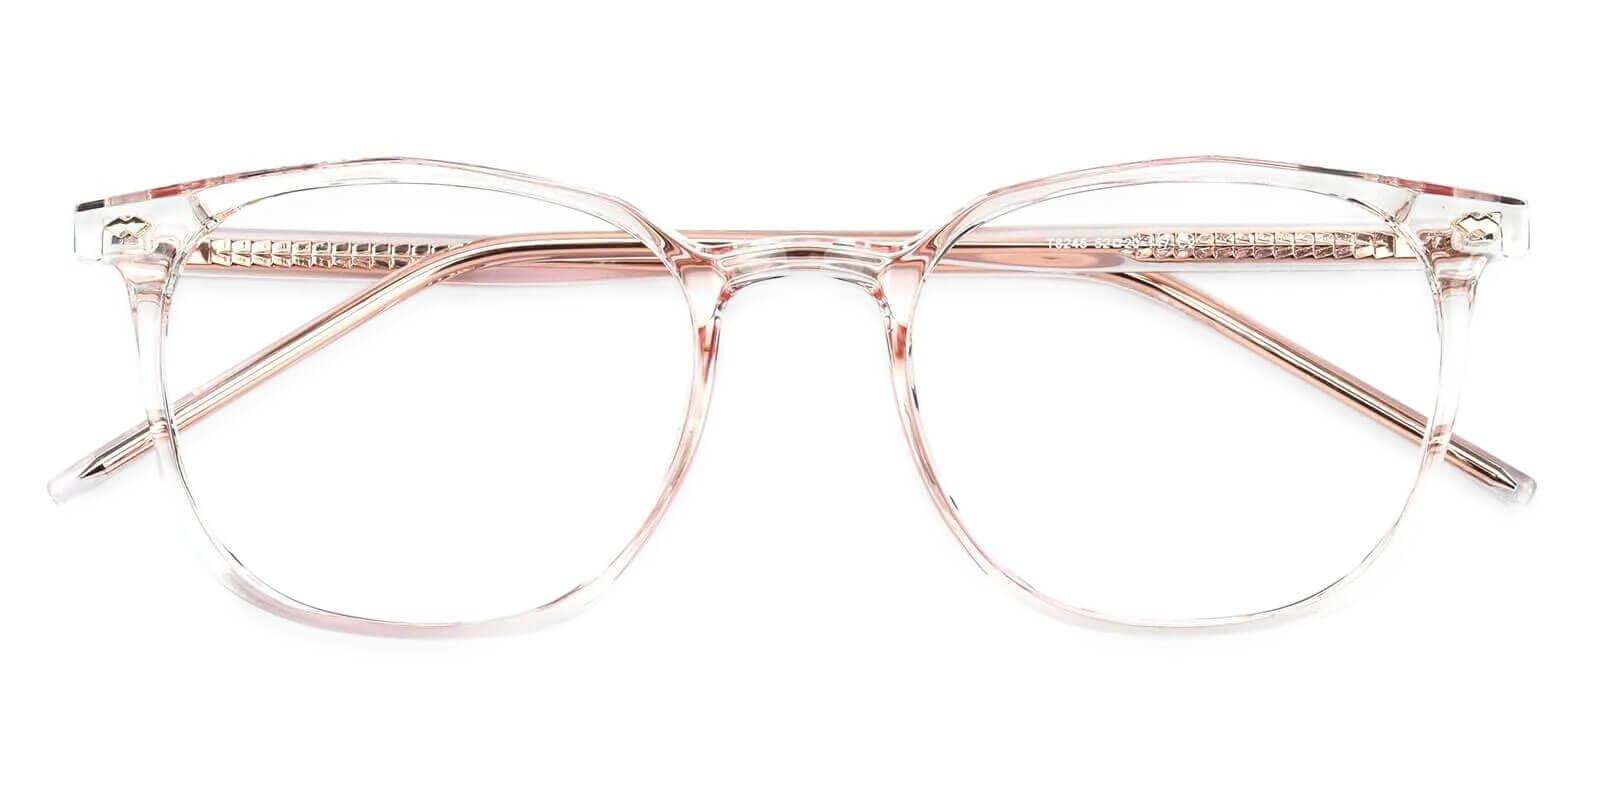 Prodigy Pink Acetate Eyeglasses , SpringHinges , UniversalBridgeFit Frames from ABBE Glasses